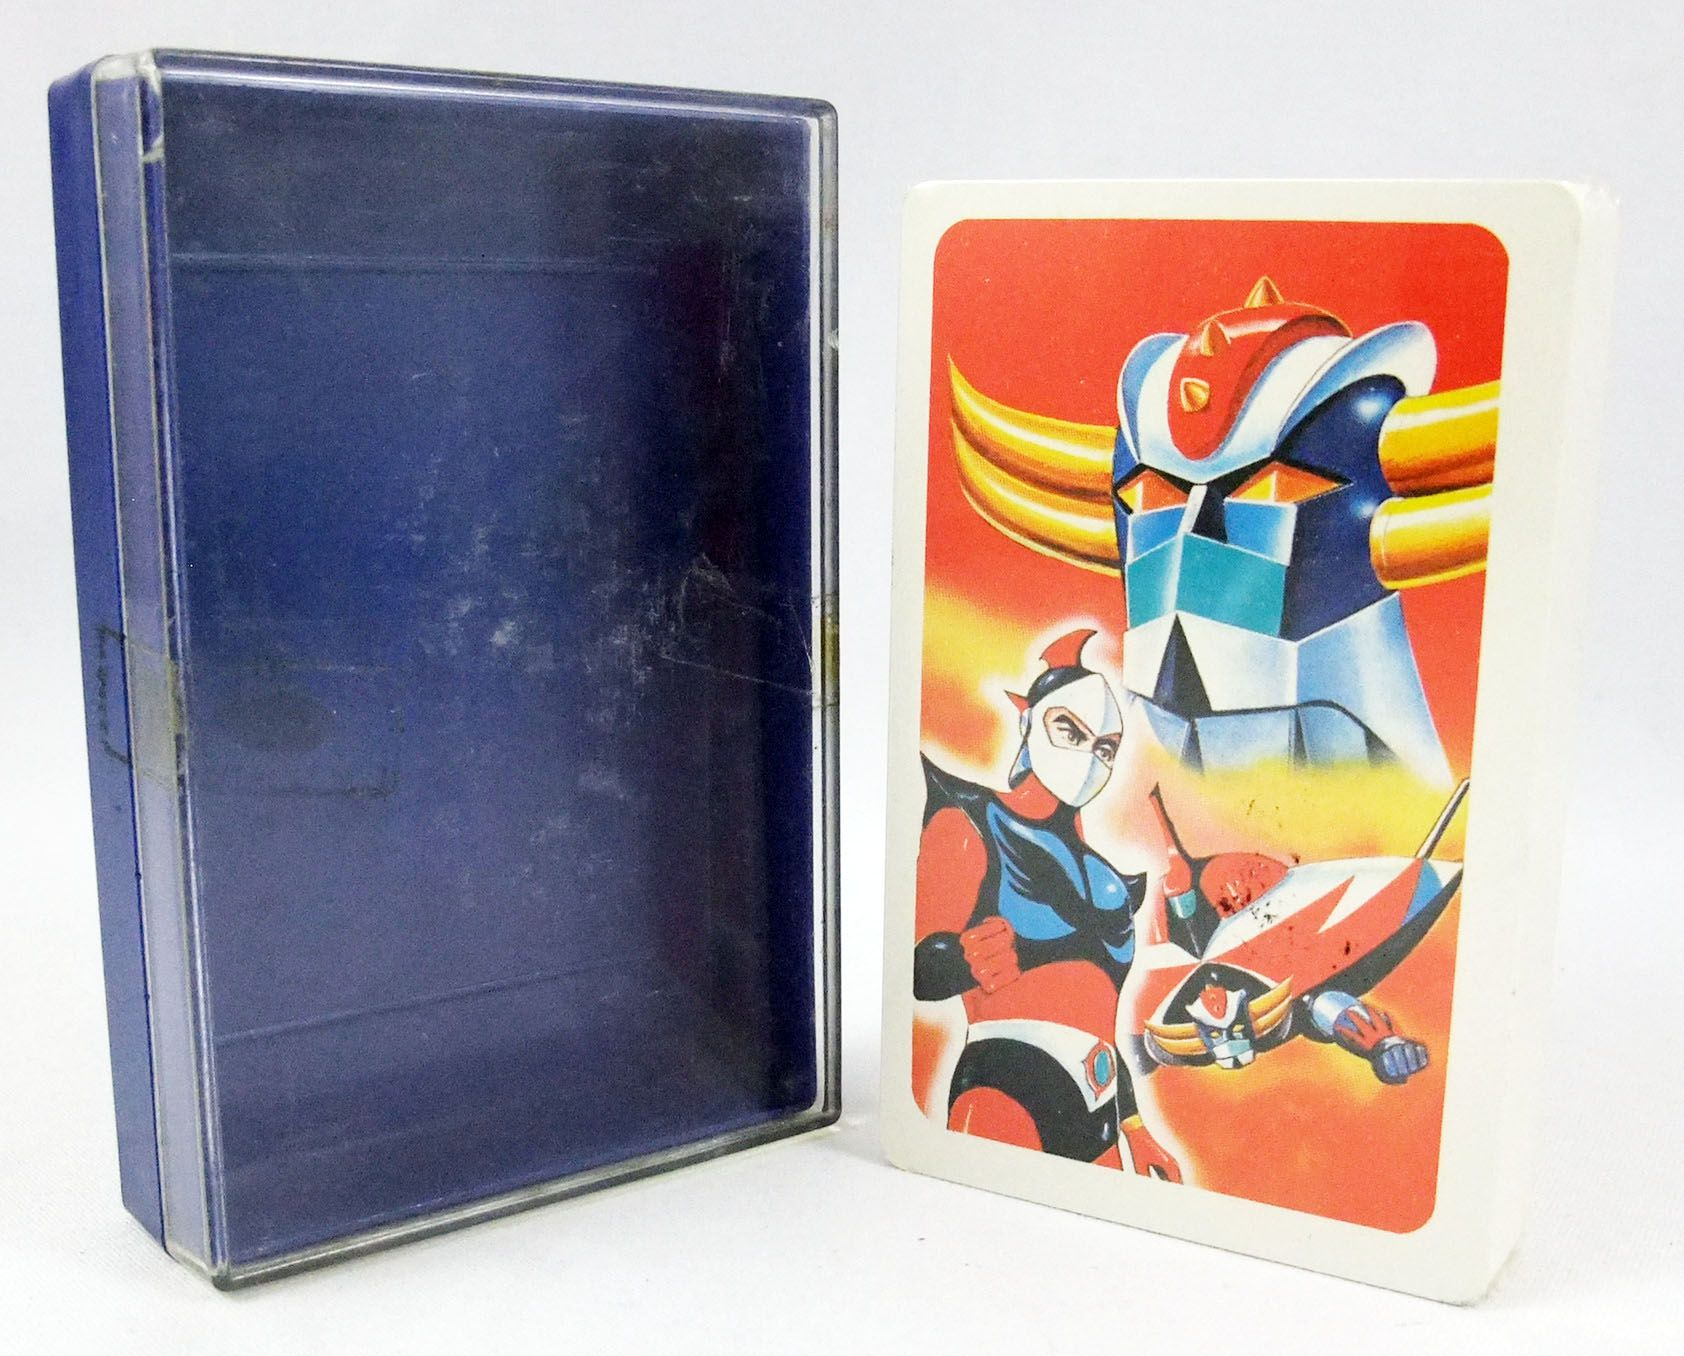 Grendizer - Playing cards deck (mint in box) - Toei Doga Japan 1976